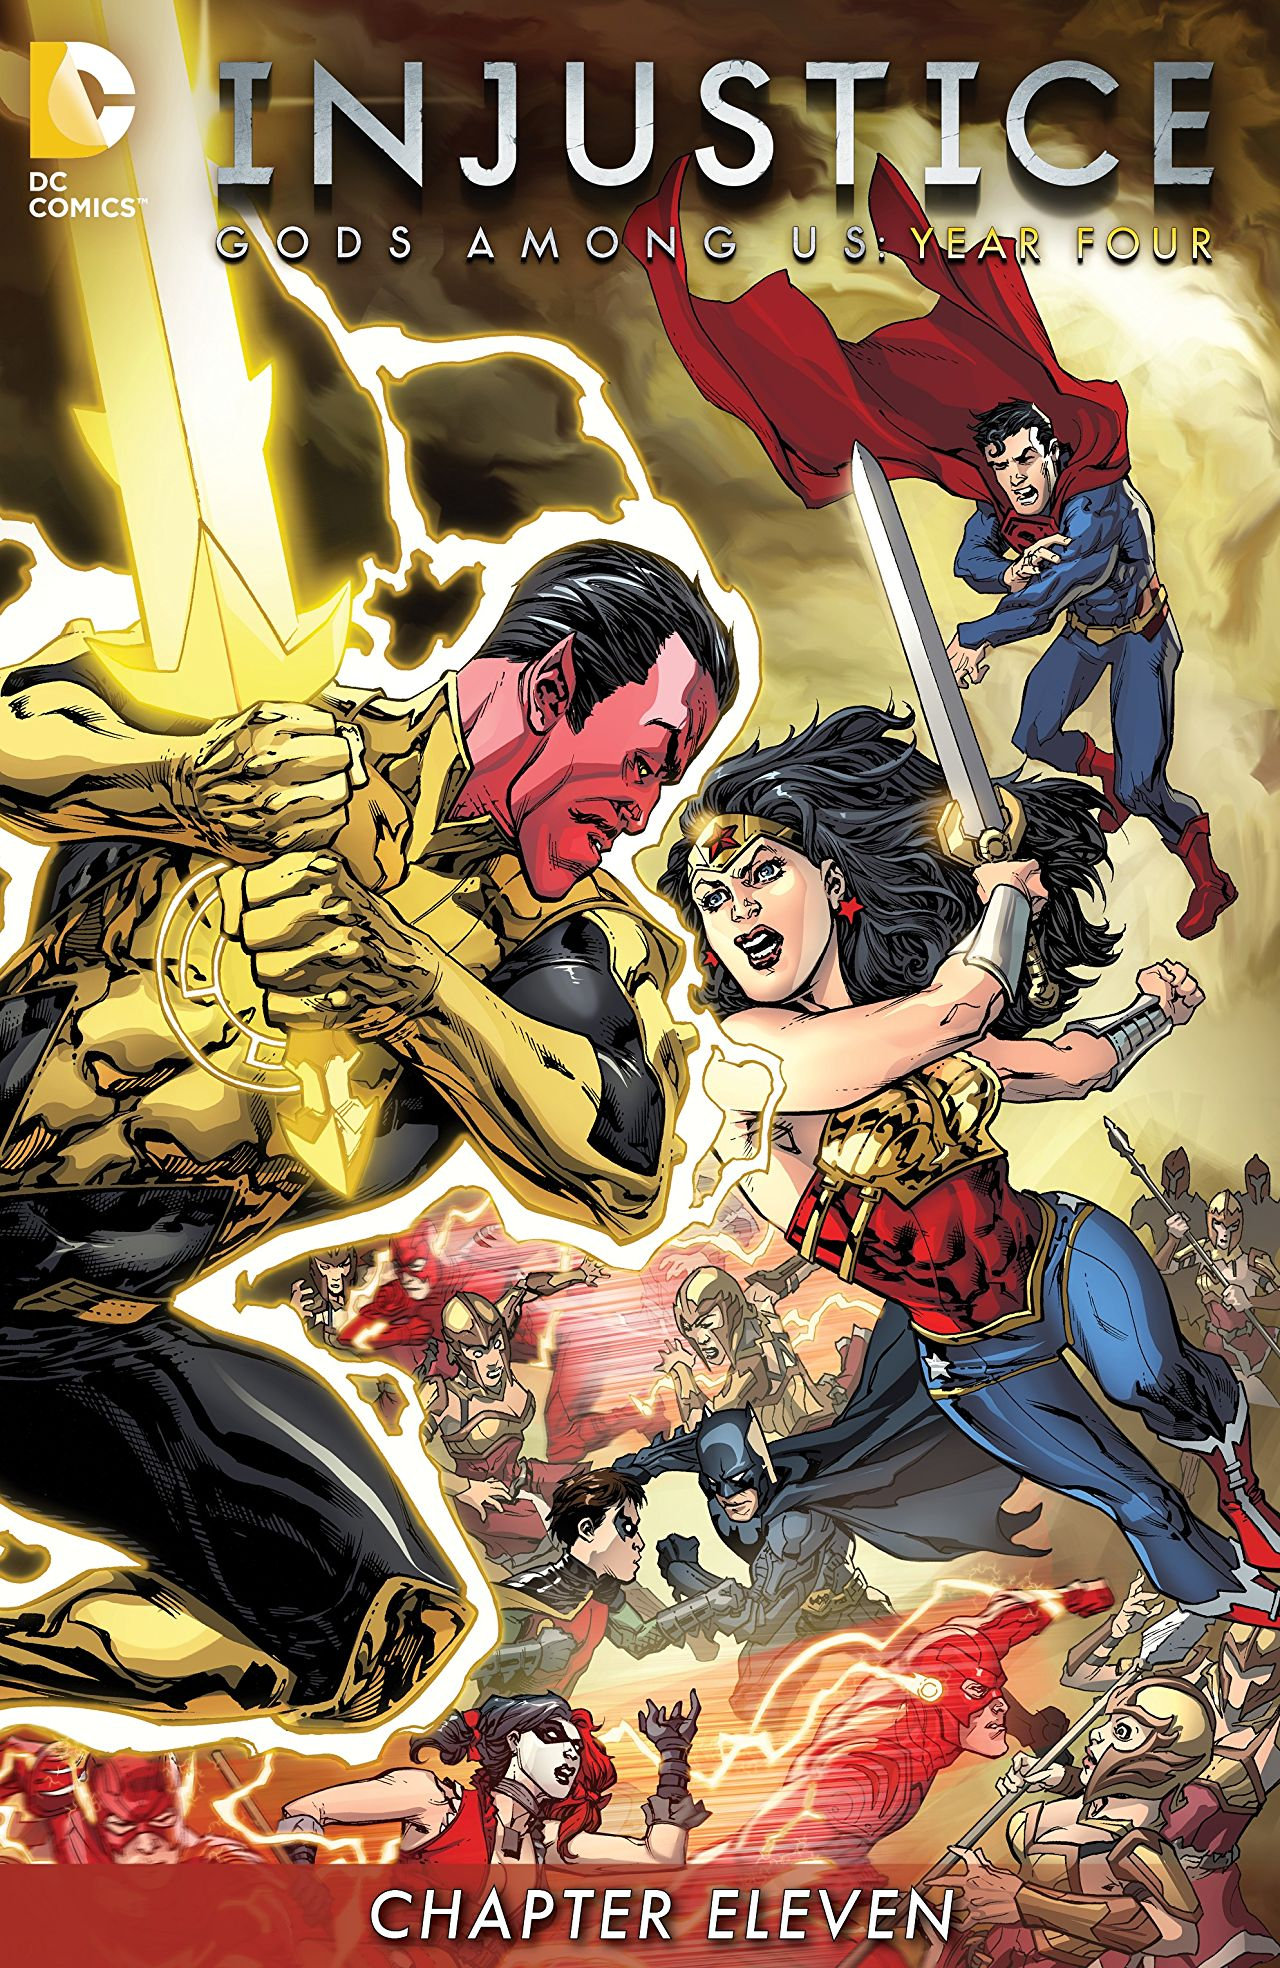 Injustice: Gods Among Us: Year Four Vol 1 11 (Digital)